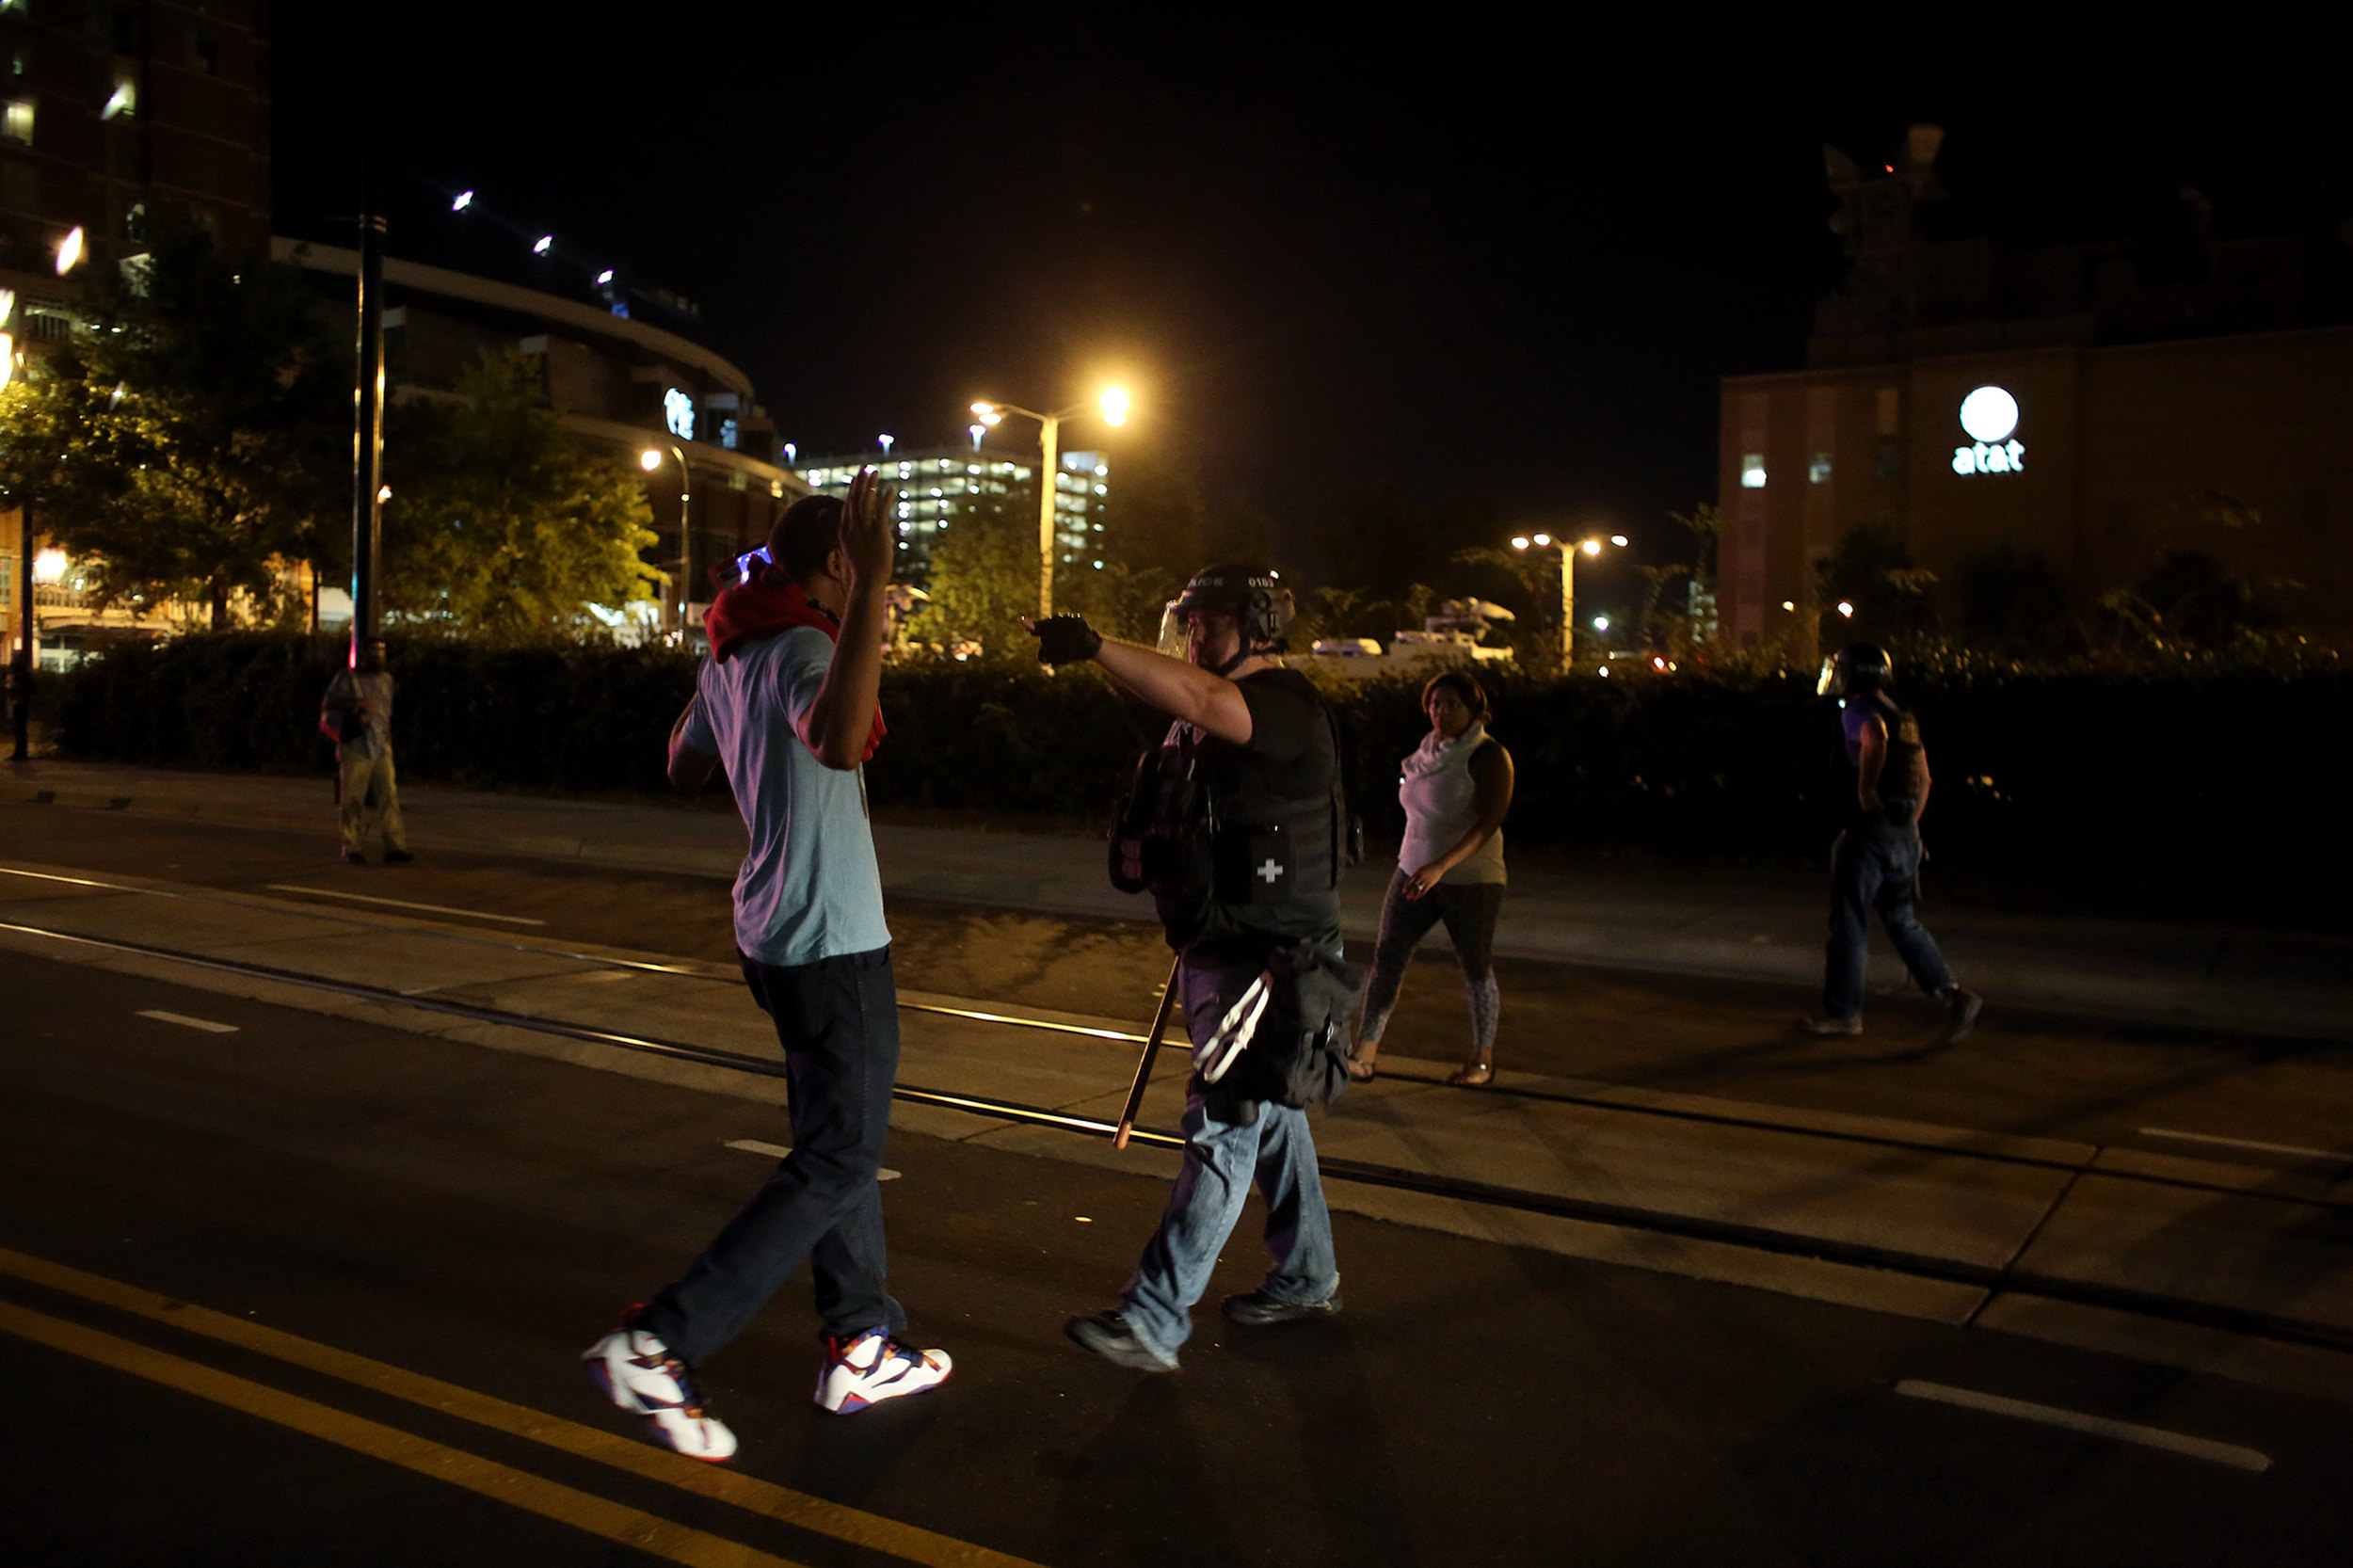 A law enforcement officer commands a protester to get out of the street, Sept. 21, 2016, on East Trade Street in downtown Charlotte, North Carolina.